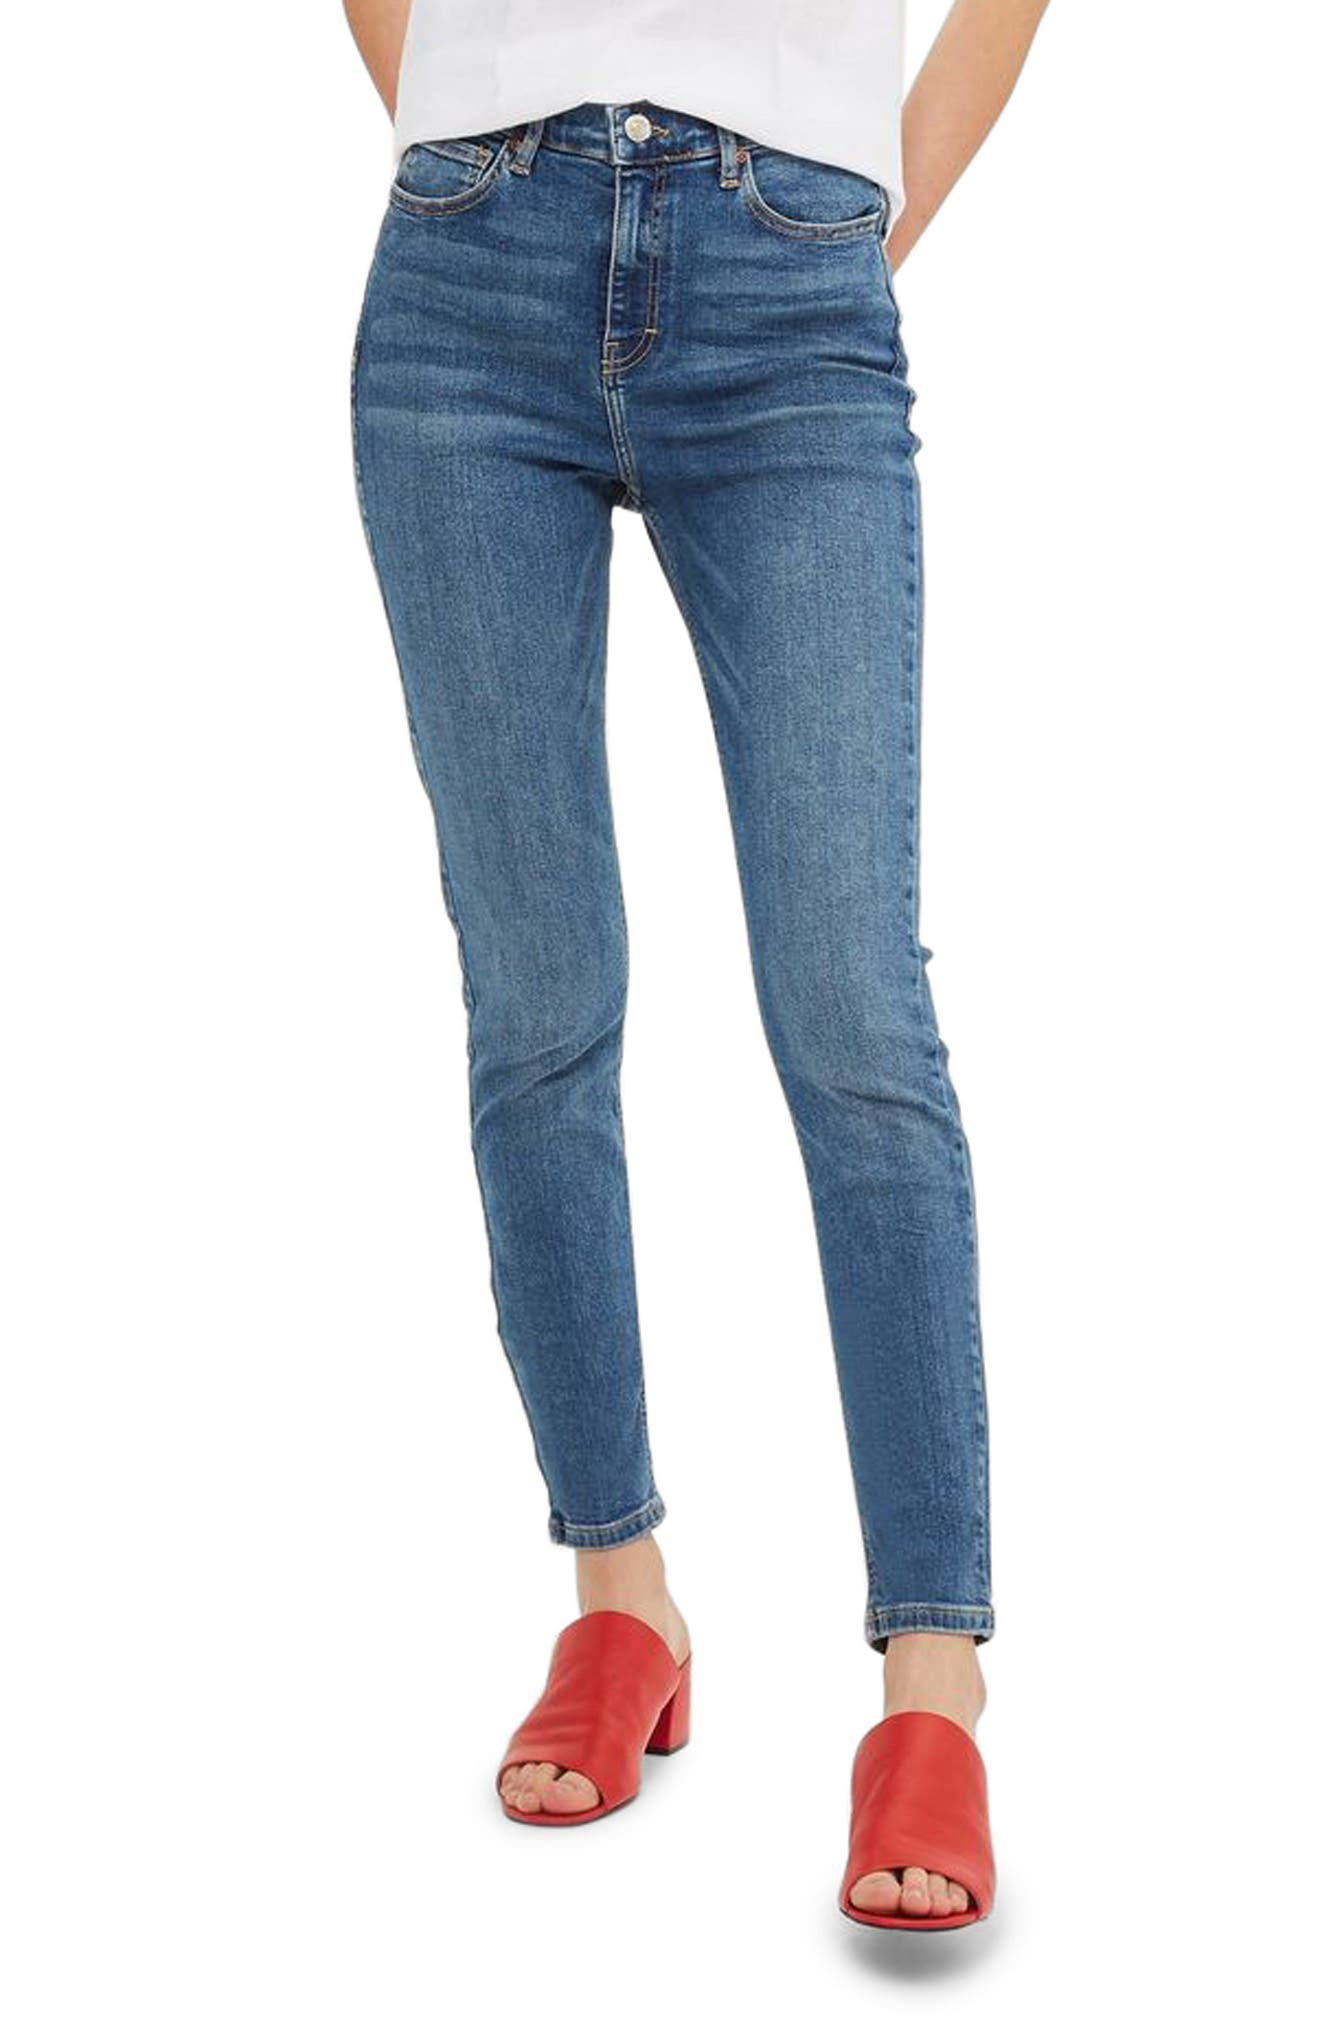 Alternate Image 1 Selected - Topshop Jamie High Waist Ankle Skinny Jeans (Tall)